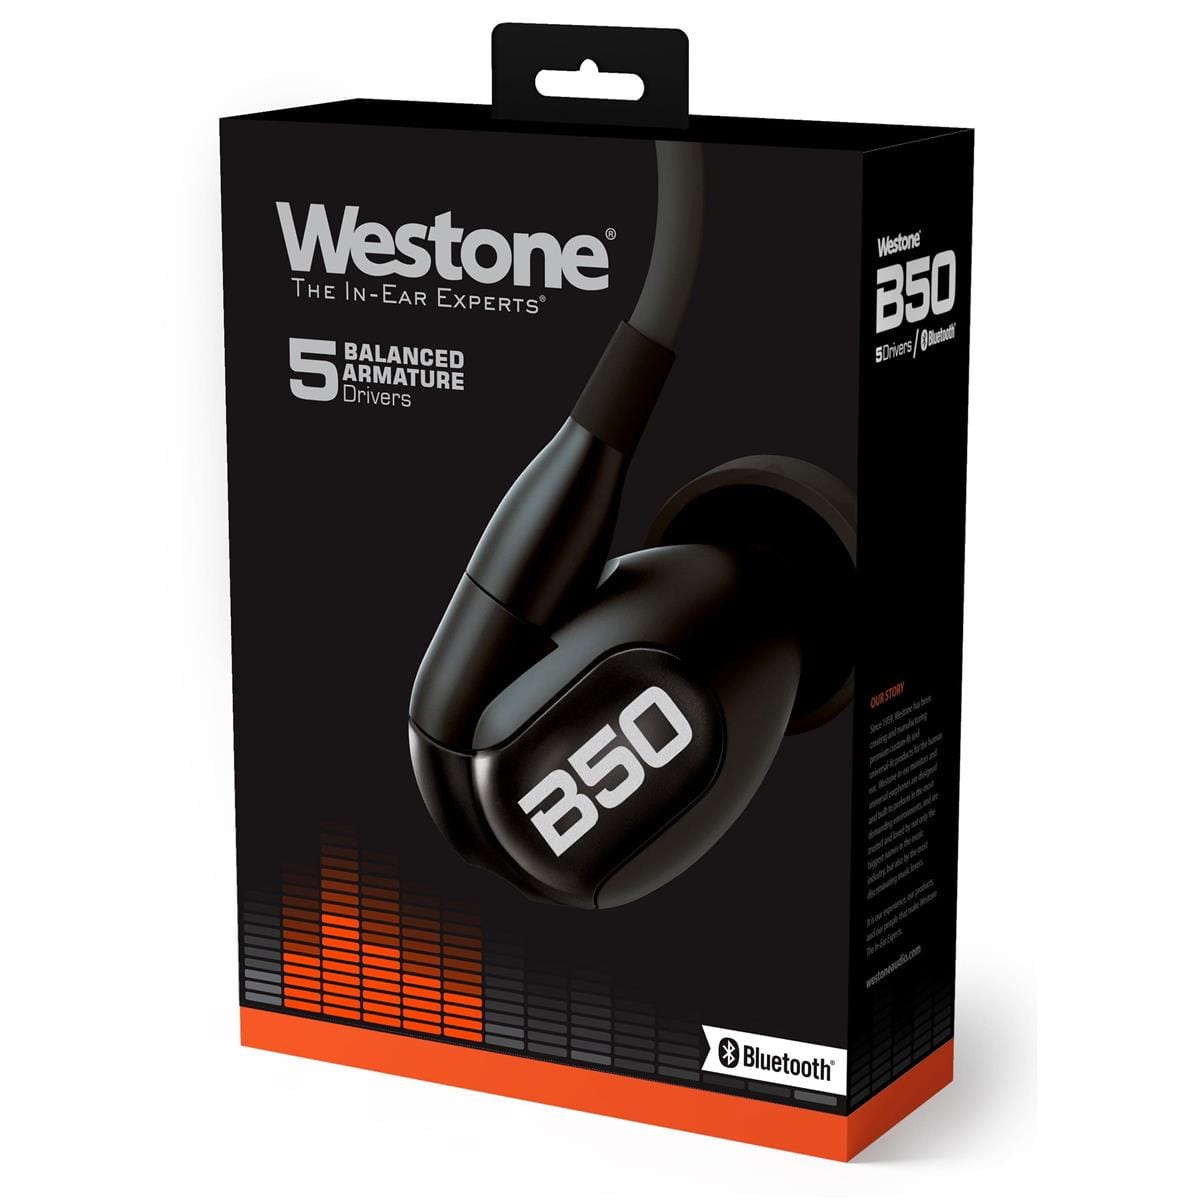 Westone B50 Five-Driver Earphones w/ Extra Cable $299 + free s/h